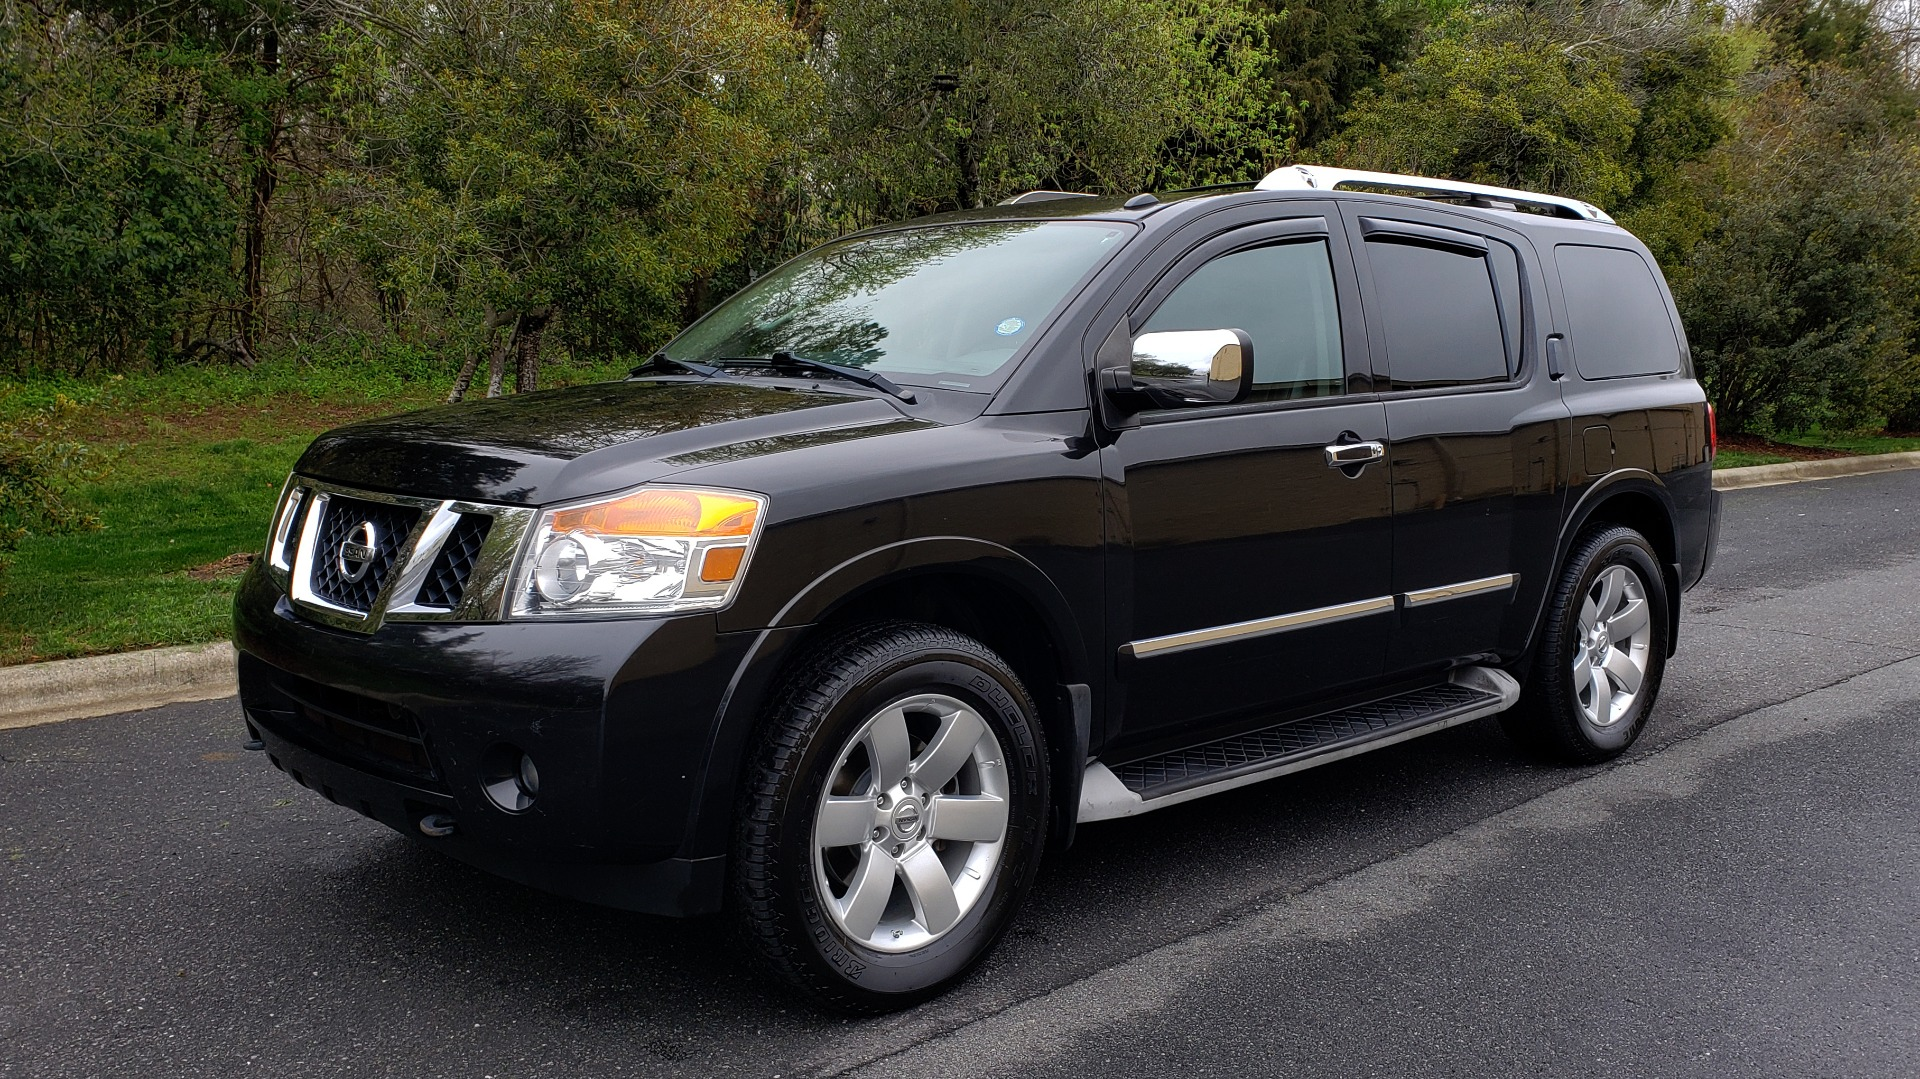 Used 2013 Nissan ARMADA SL 4WD / 5.6L V8 / NAV / SUNROOF / 3-ROW / REARVIEW for sale Sold at Formula Imports in Charlotte NC 28227 1